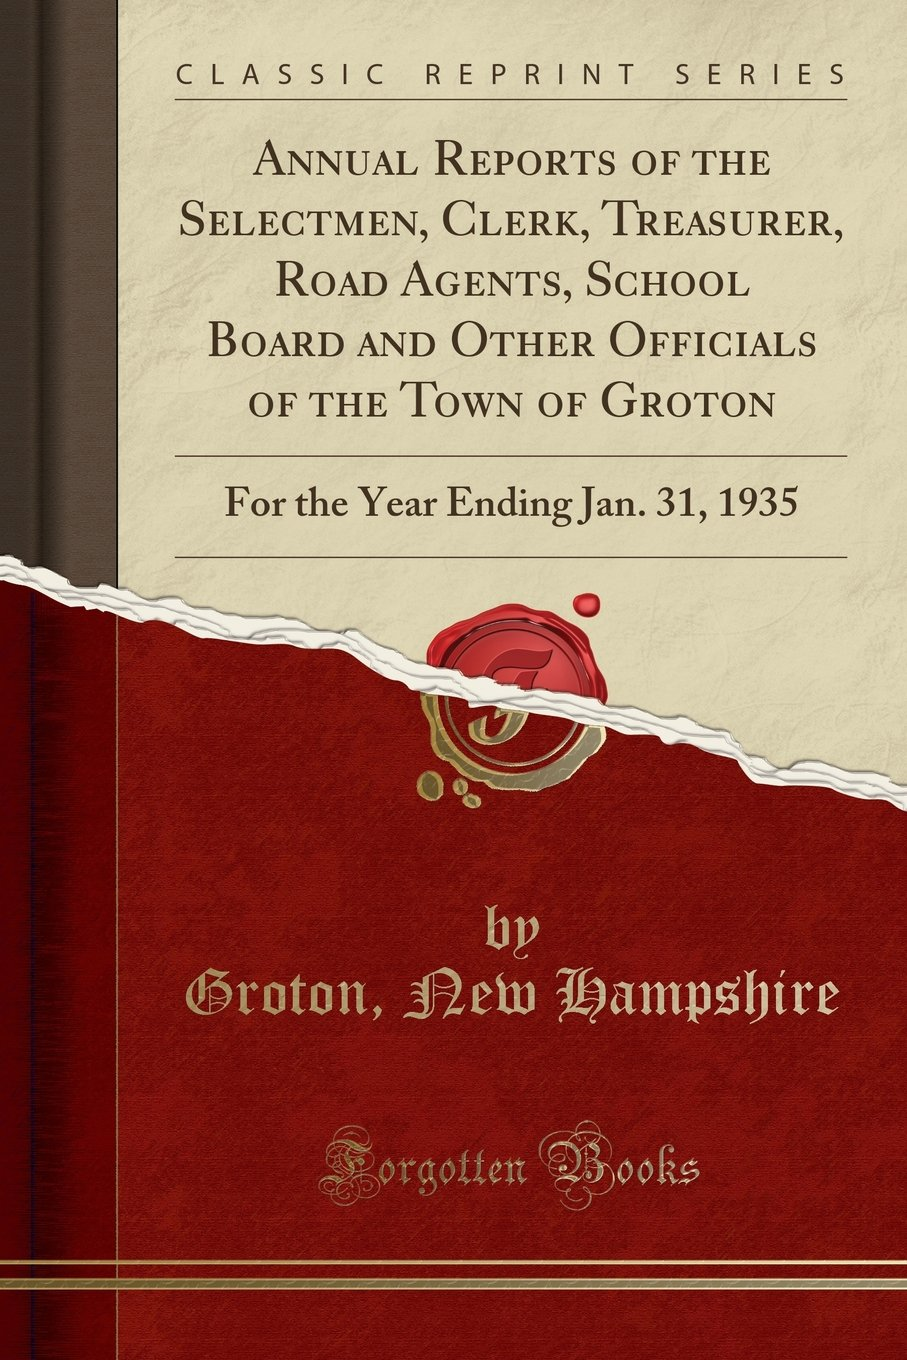 Annual Reports of the Selectmen, Clerk, Treasurer, Road Agents, School Board and Other Officials of the Town of Groton: For the Year Ending Jan. 31, 1935 (Classic Reprint) PDF